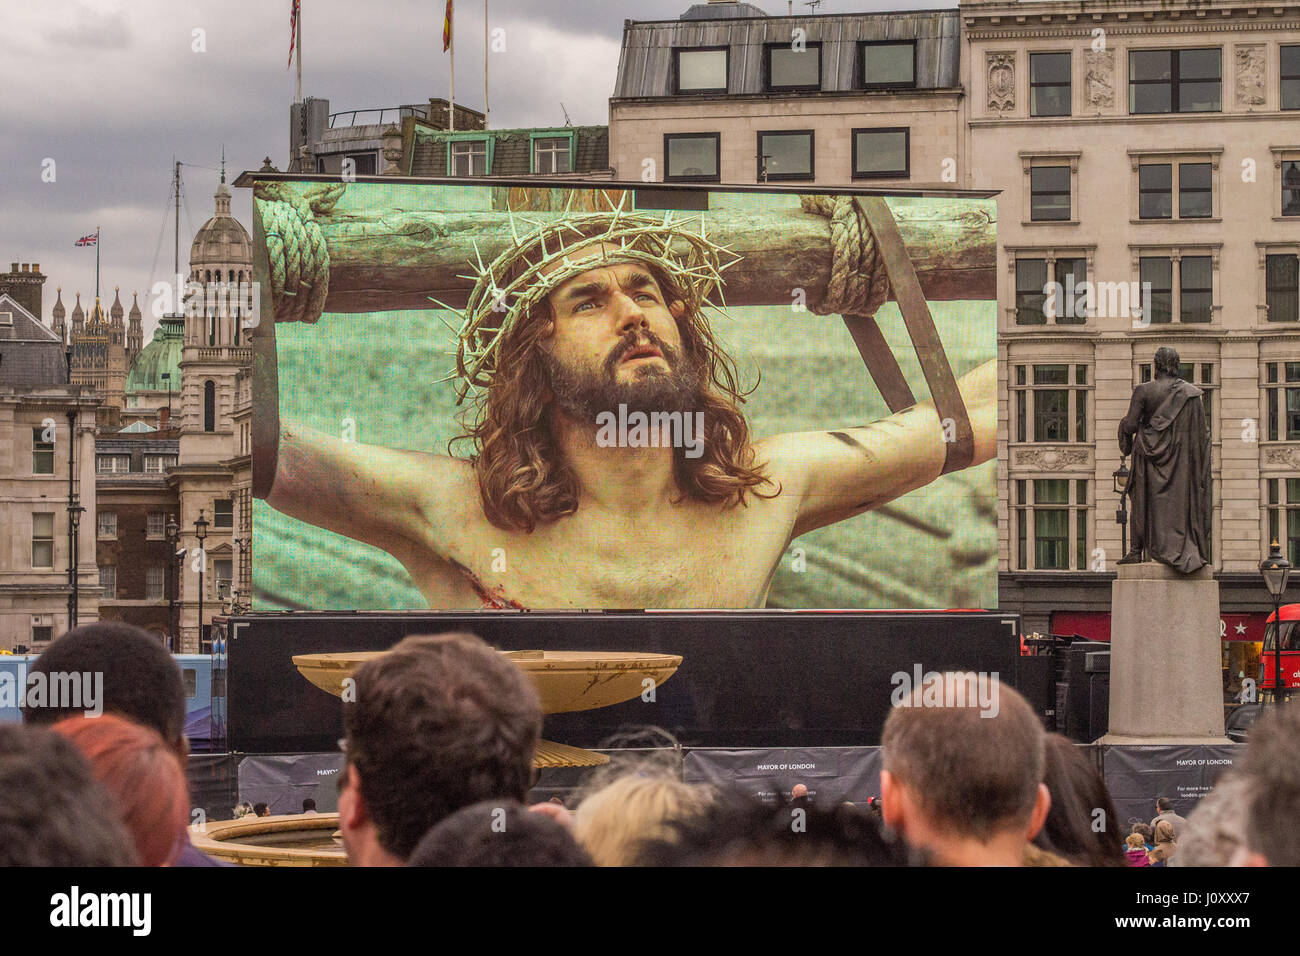 Theatrical performance of the Passion of the Christ in Trafalgar Square London, Easter Weekend 2017 - Stock Image